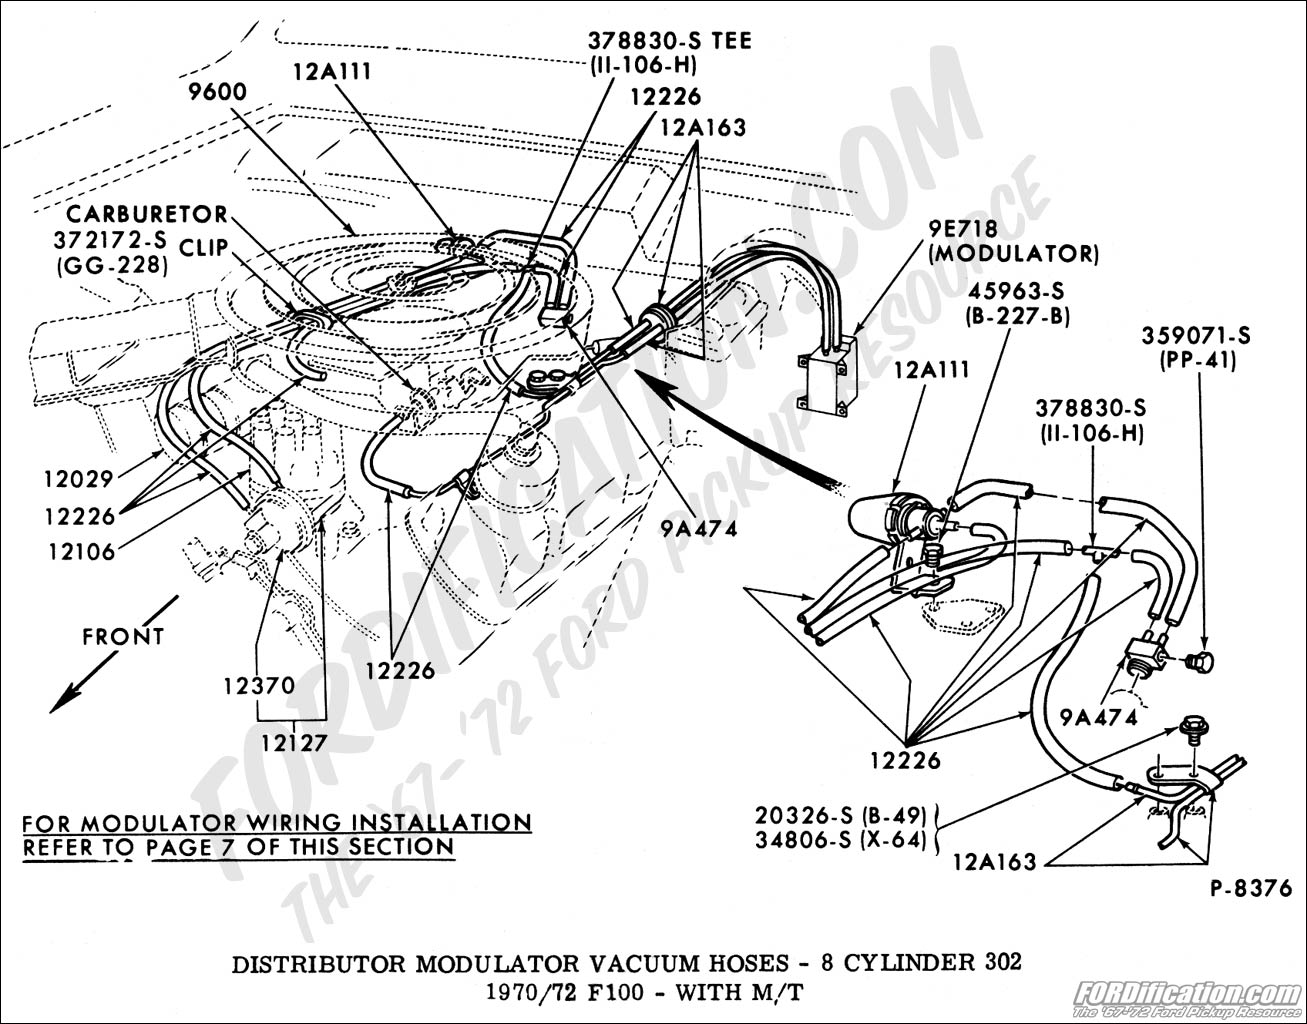 Ford Focus Wiring Diagram further Muncie Lectra Shift Pto Wiring Diagram Wiring Diagrams additionally 4jh55 Ford Need Wiring Diagram Tail Lights Only Work Winter further Ford Zf S650 6 Speed Rebuild Kit Manual Transmissions Drivetrain With Transmission Parts Diagram in addition E4ODheavydutytransmission. on ford f550 pto wiring diagram